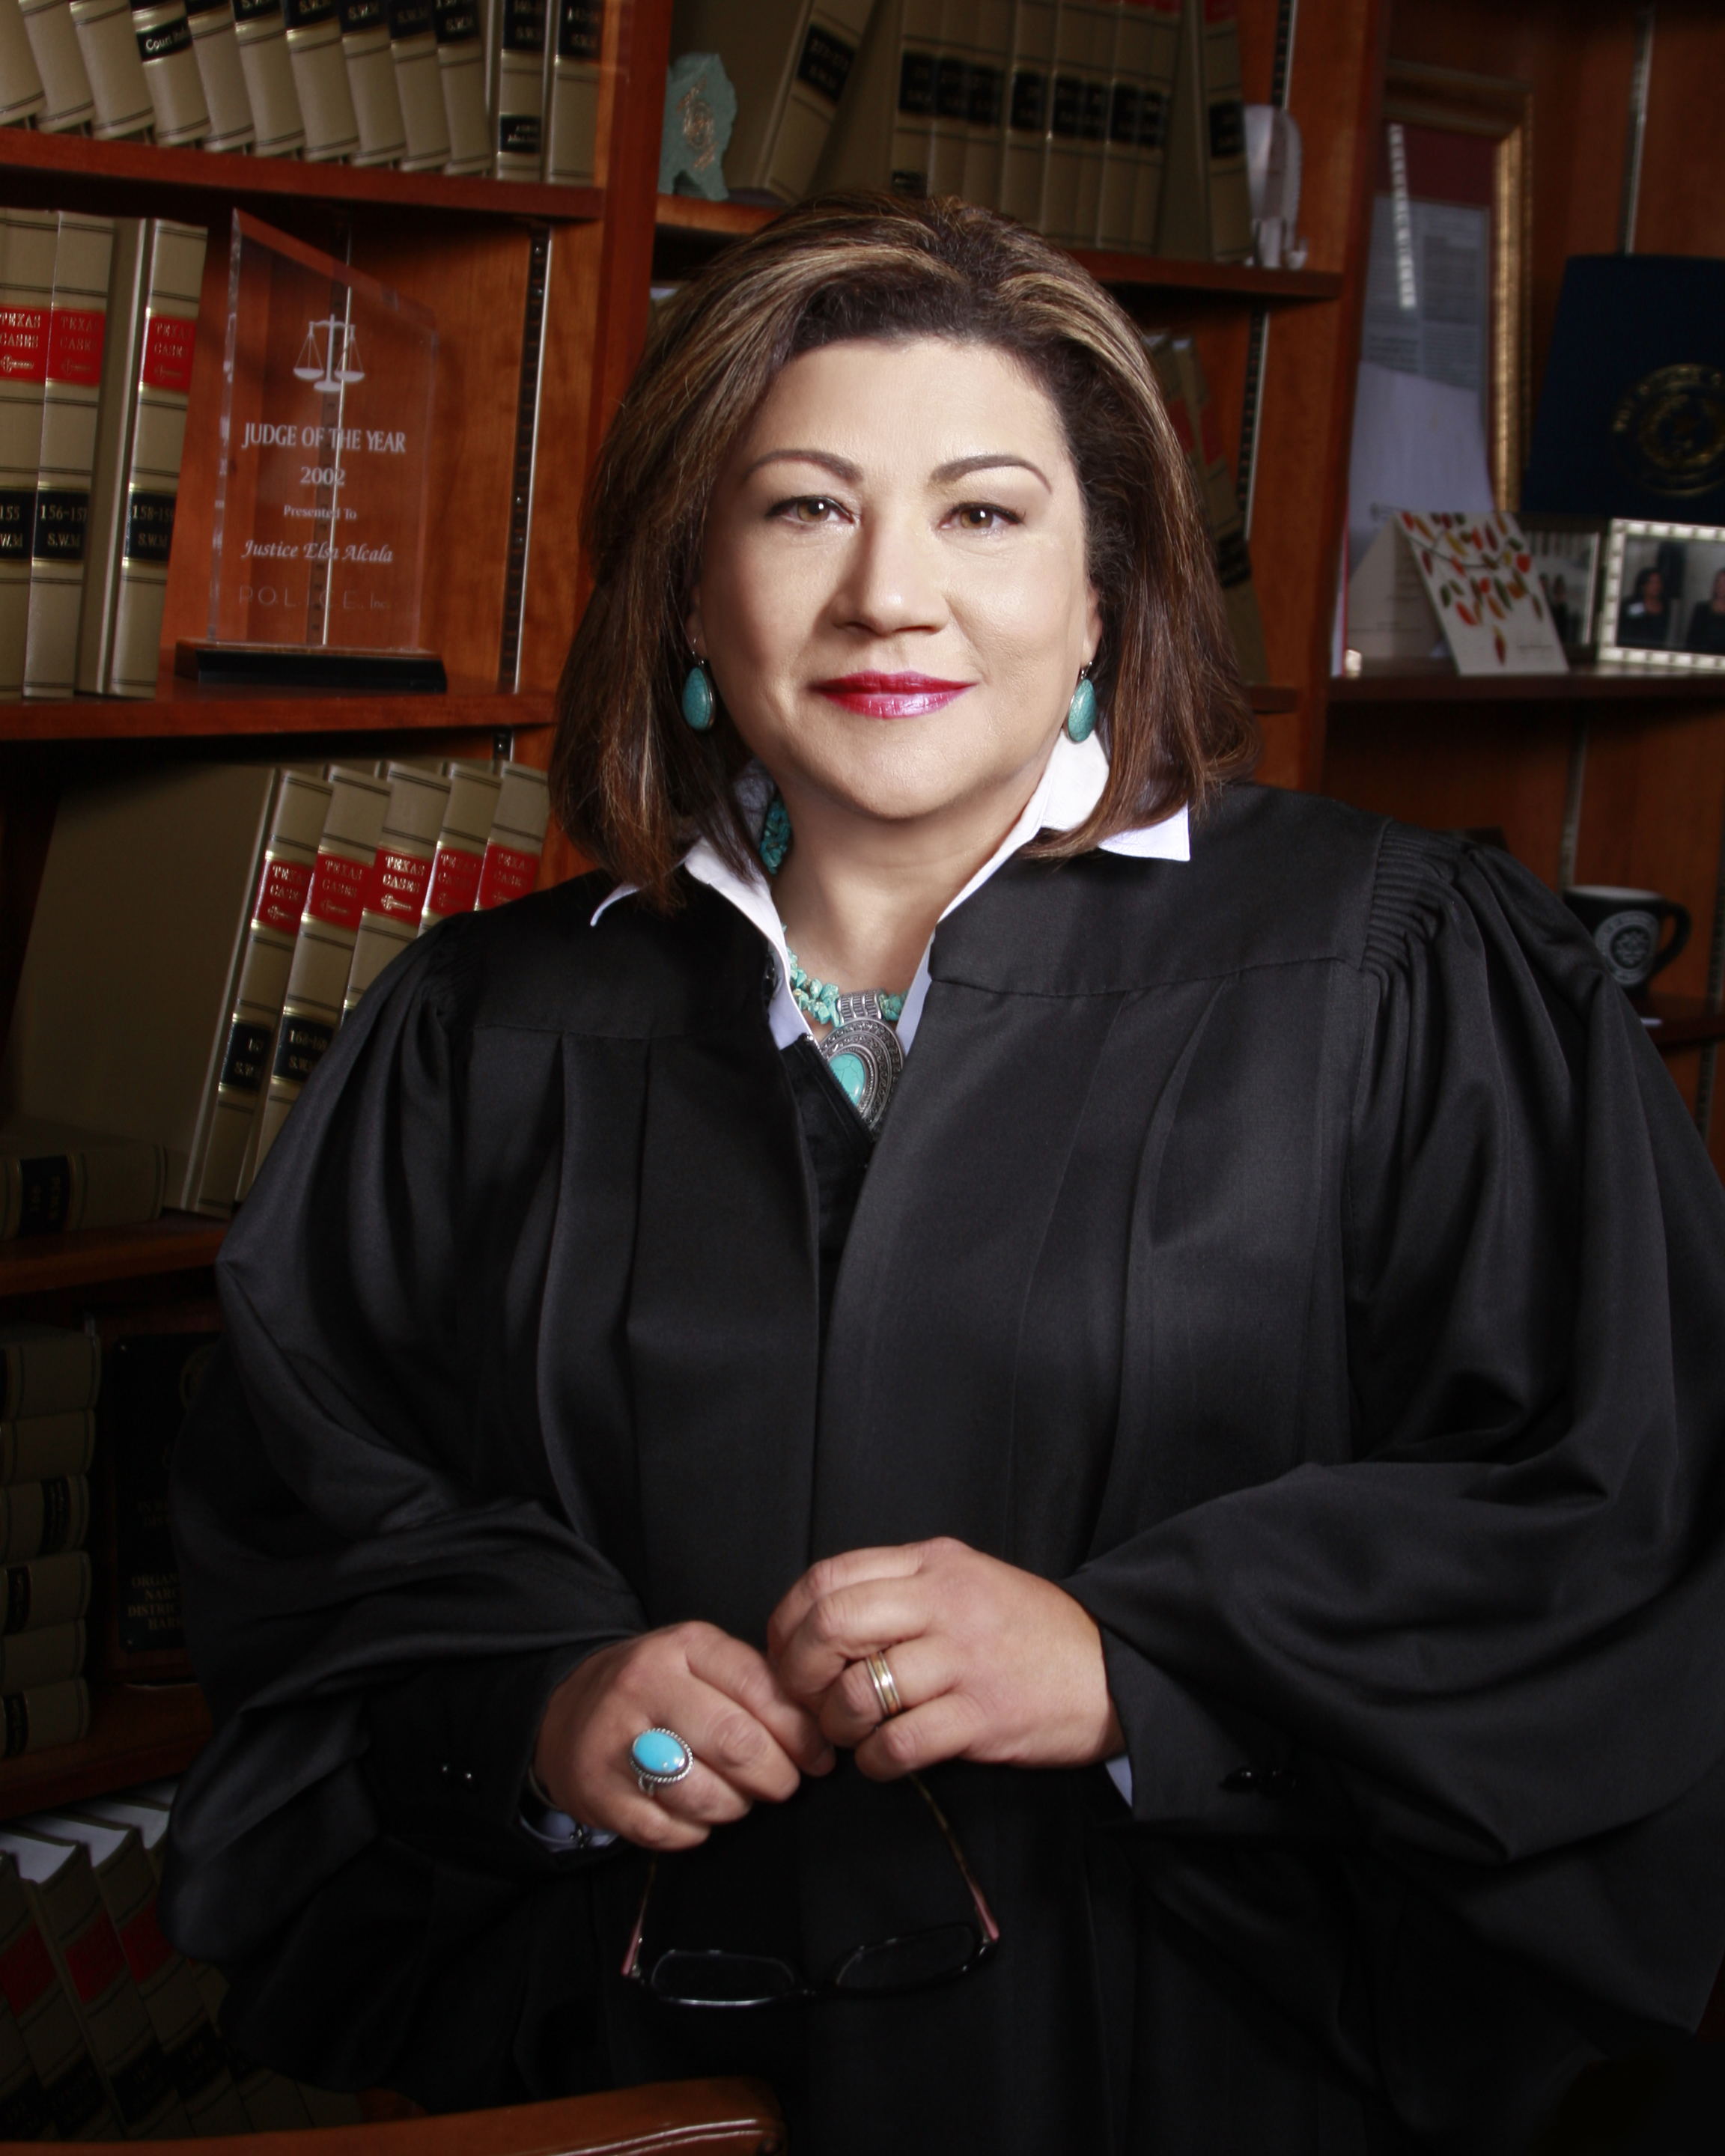 Elsa Alcala | Member - Elsa Alcala is currently a self-employed attorney. In 2018, she retired from the judiciary after twenty years as a state judge in Texas. Most recently, Alcala was a judge on the Texas Court of Criminal Appeals, the state's supreme court for criminal cases. She was appointed by Governors Perry and Bush to each of the three courts she served as a judge and she won four elections to retain those positions. Before becoming a judge, Alcala was an assistant district attorney for nine years at the Harris County District Attorney's Office. Alcala has a JD from the University of Texas.